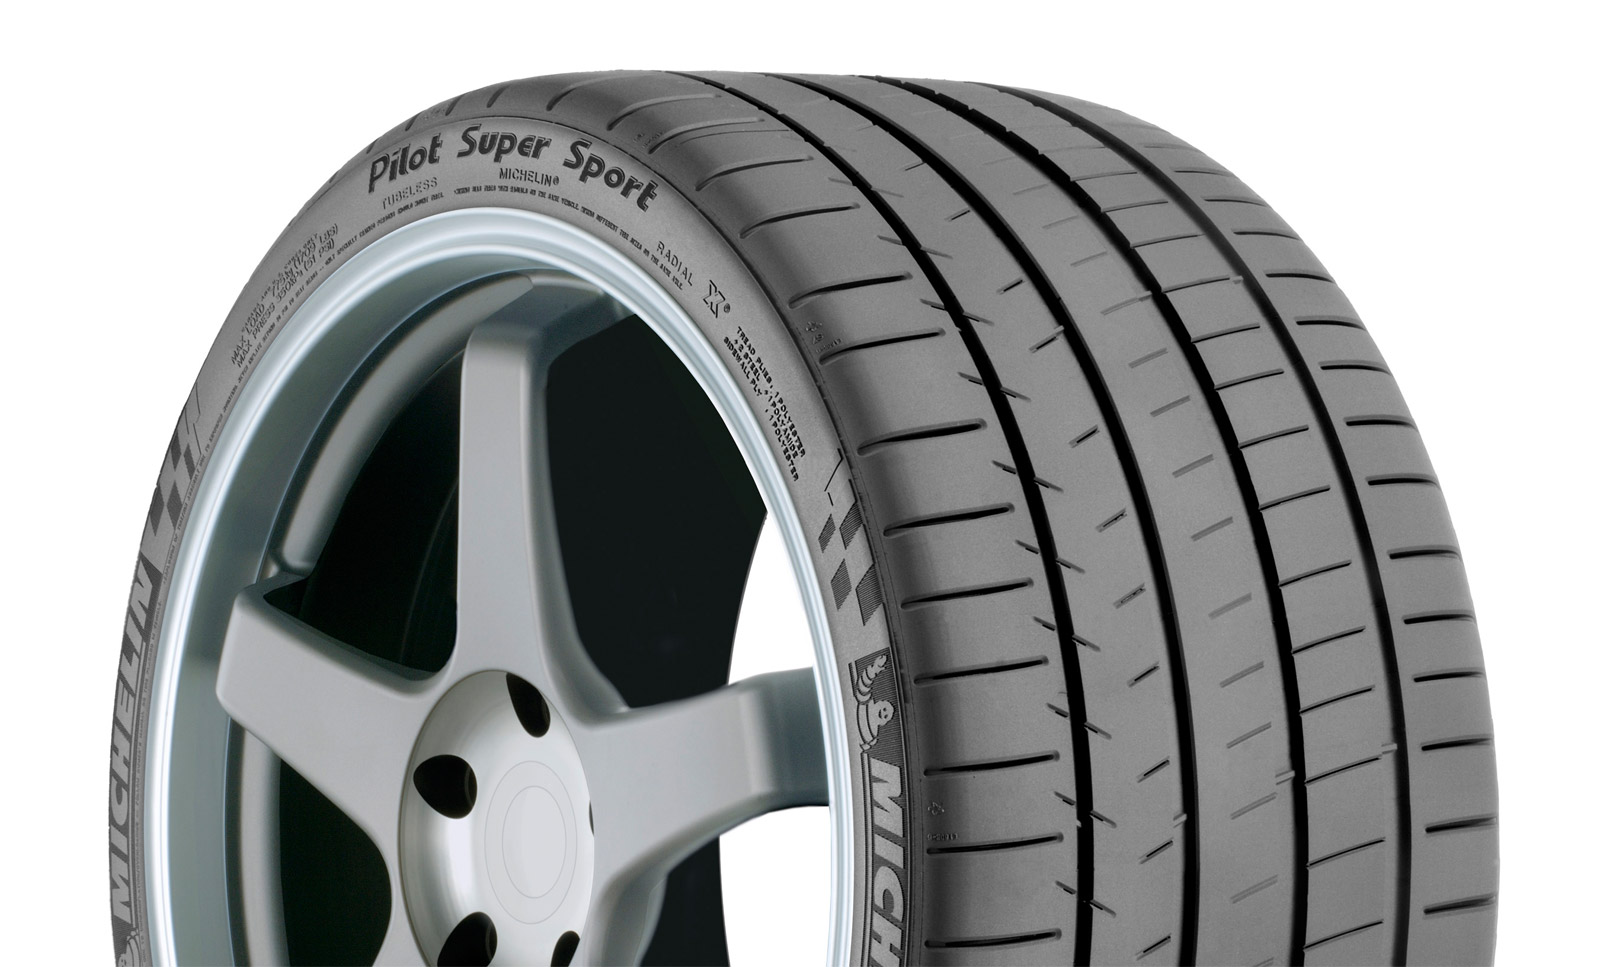 Green Tires Popularity Increasing Grip Improving Too